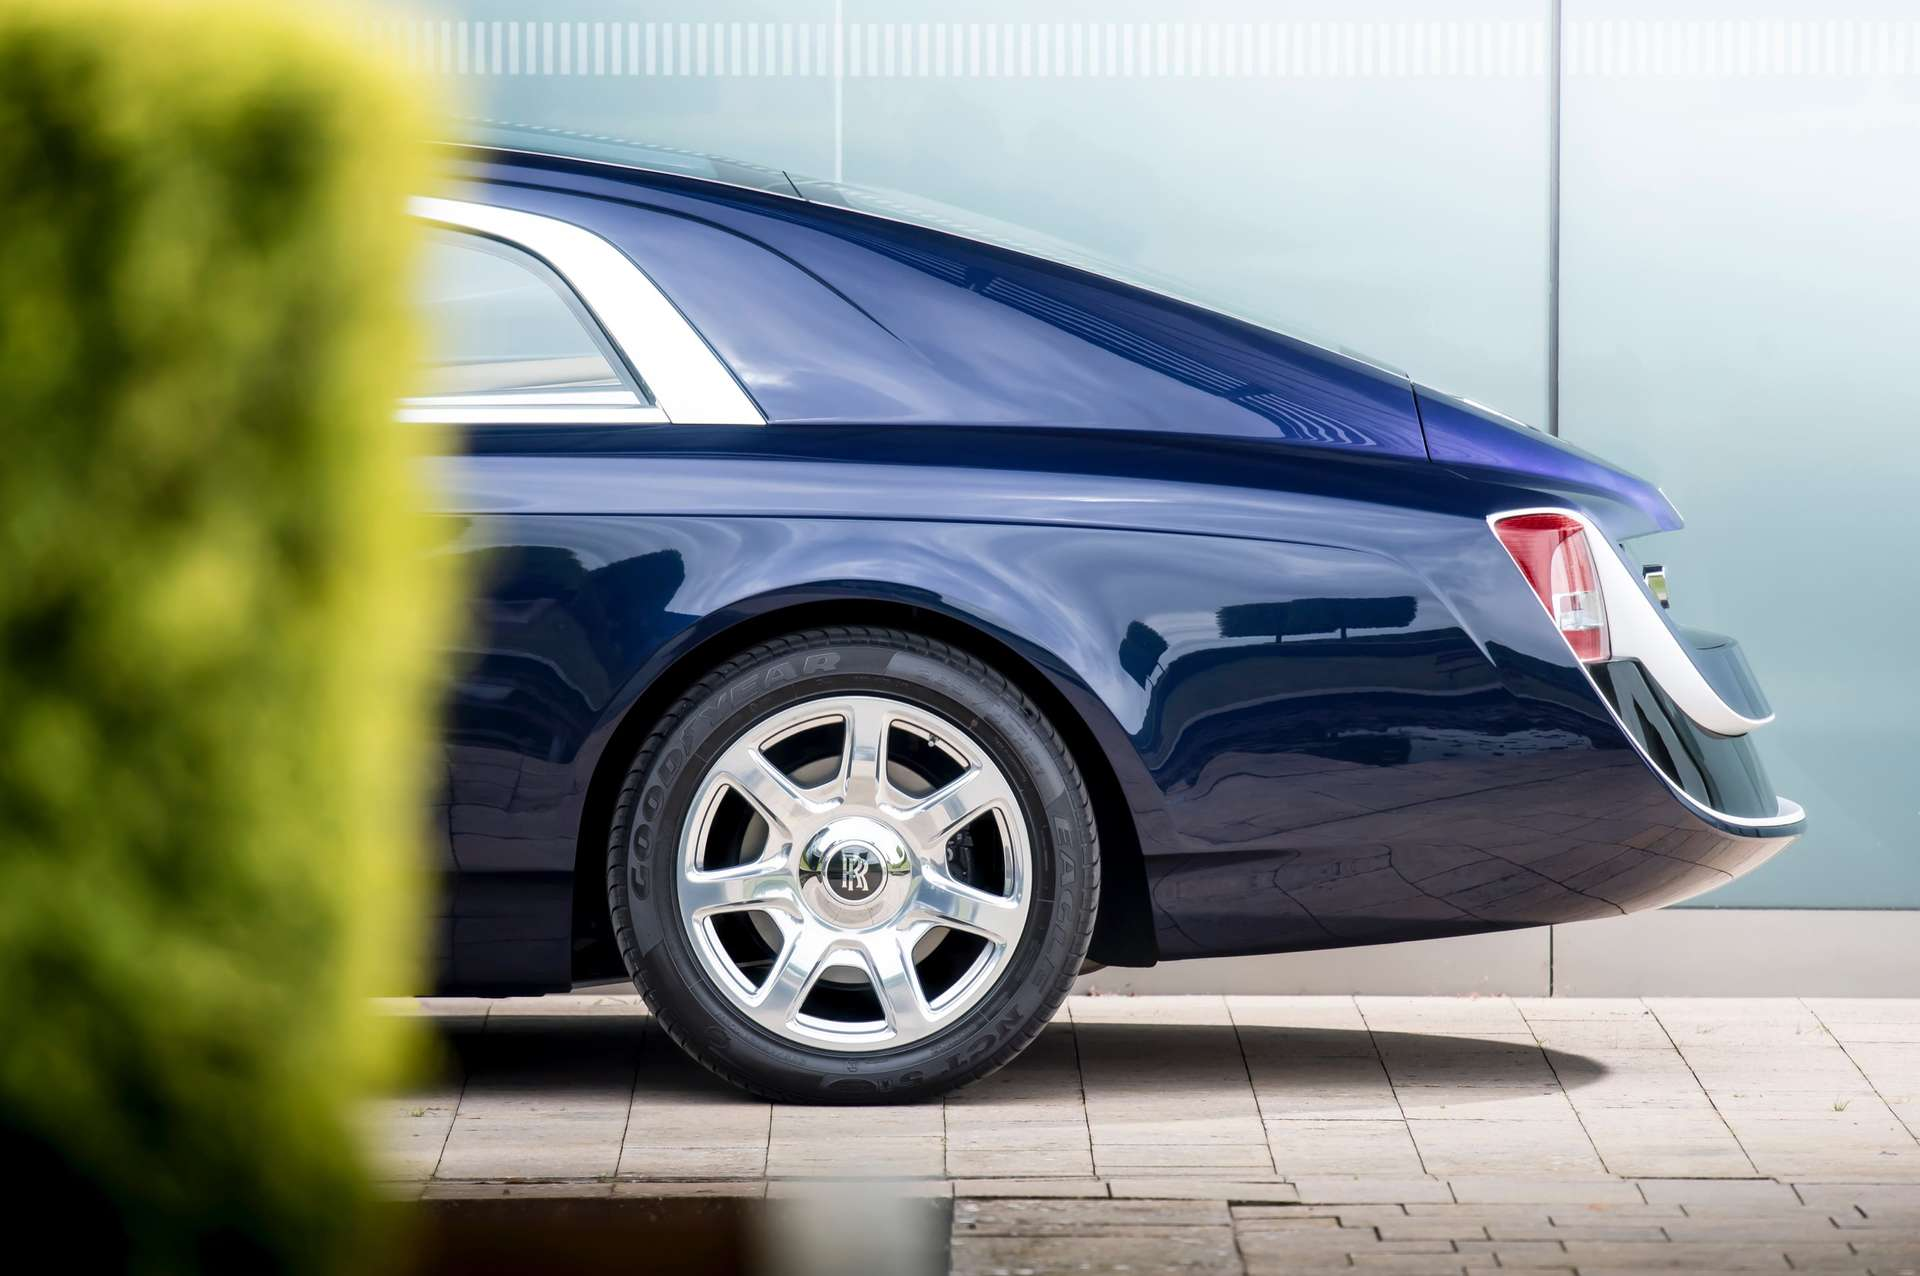 Side rear view of the Rolls-Royce Sweptail